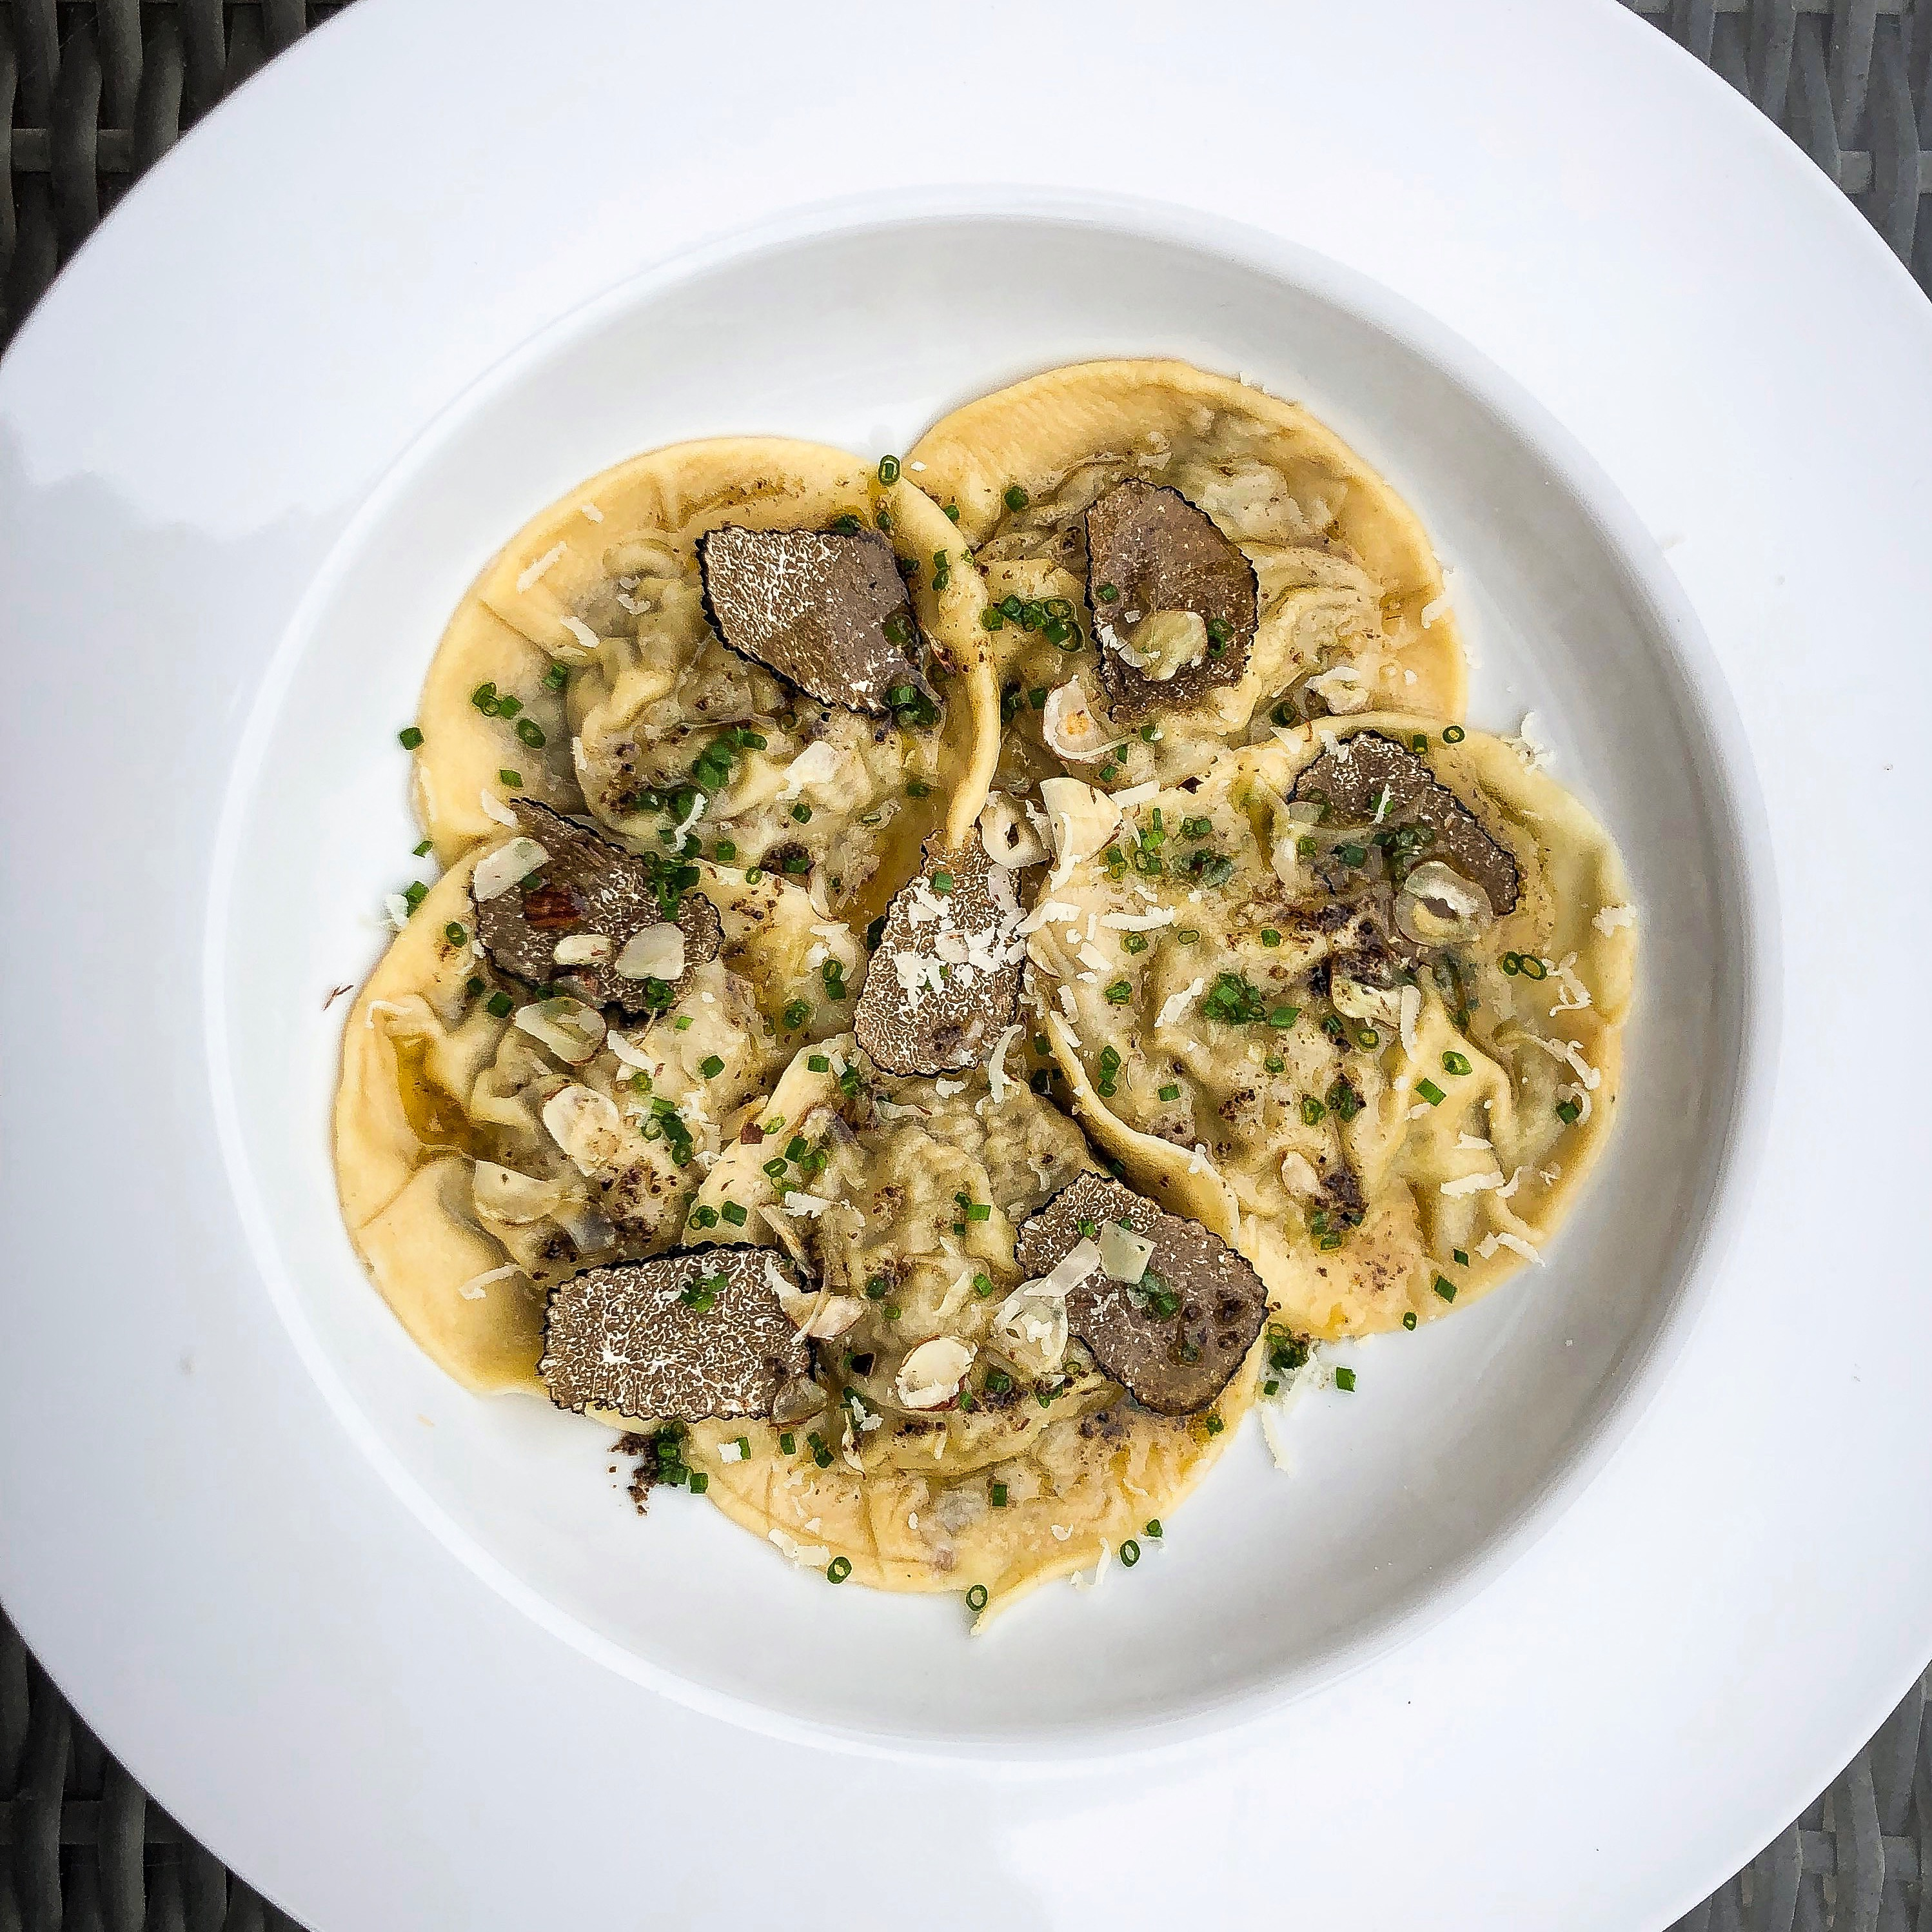 Wild Mushroom Ravioli with Summer Truffle Butter and Hazelnuts